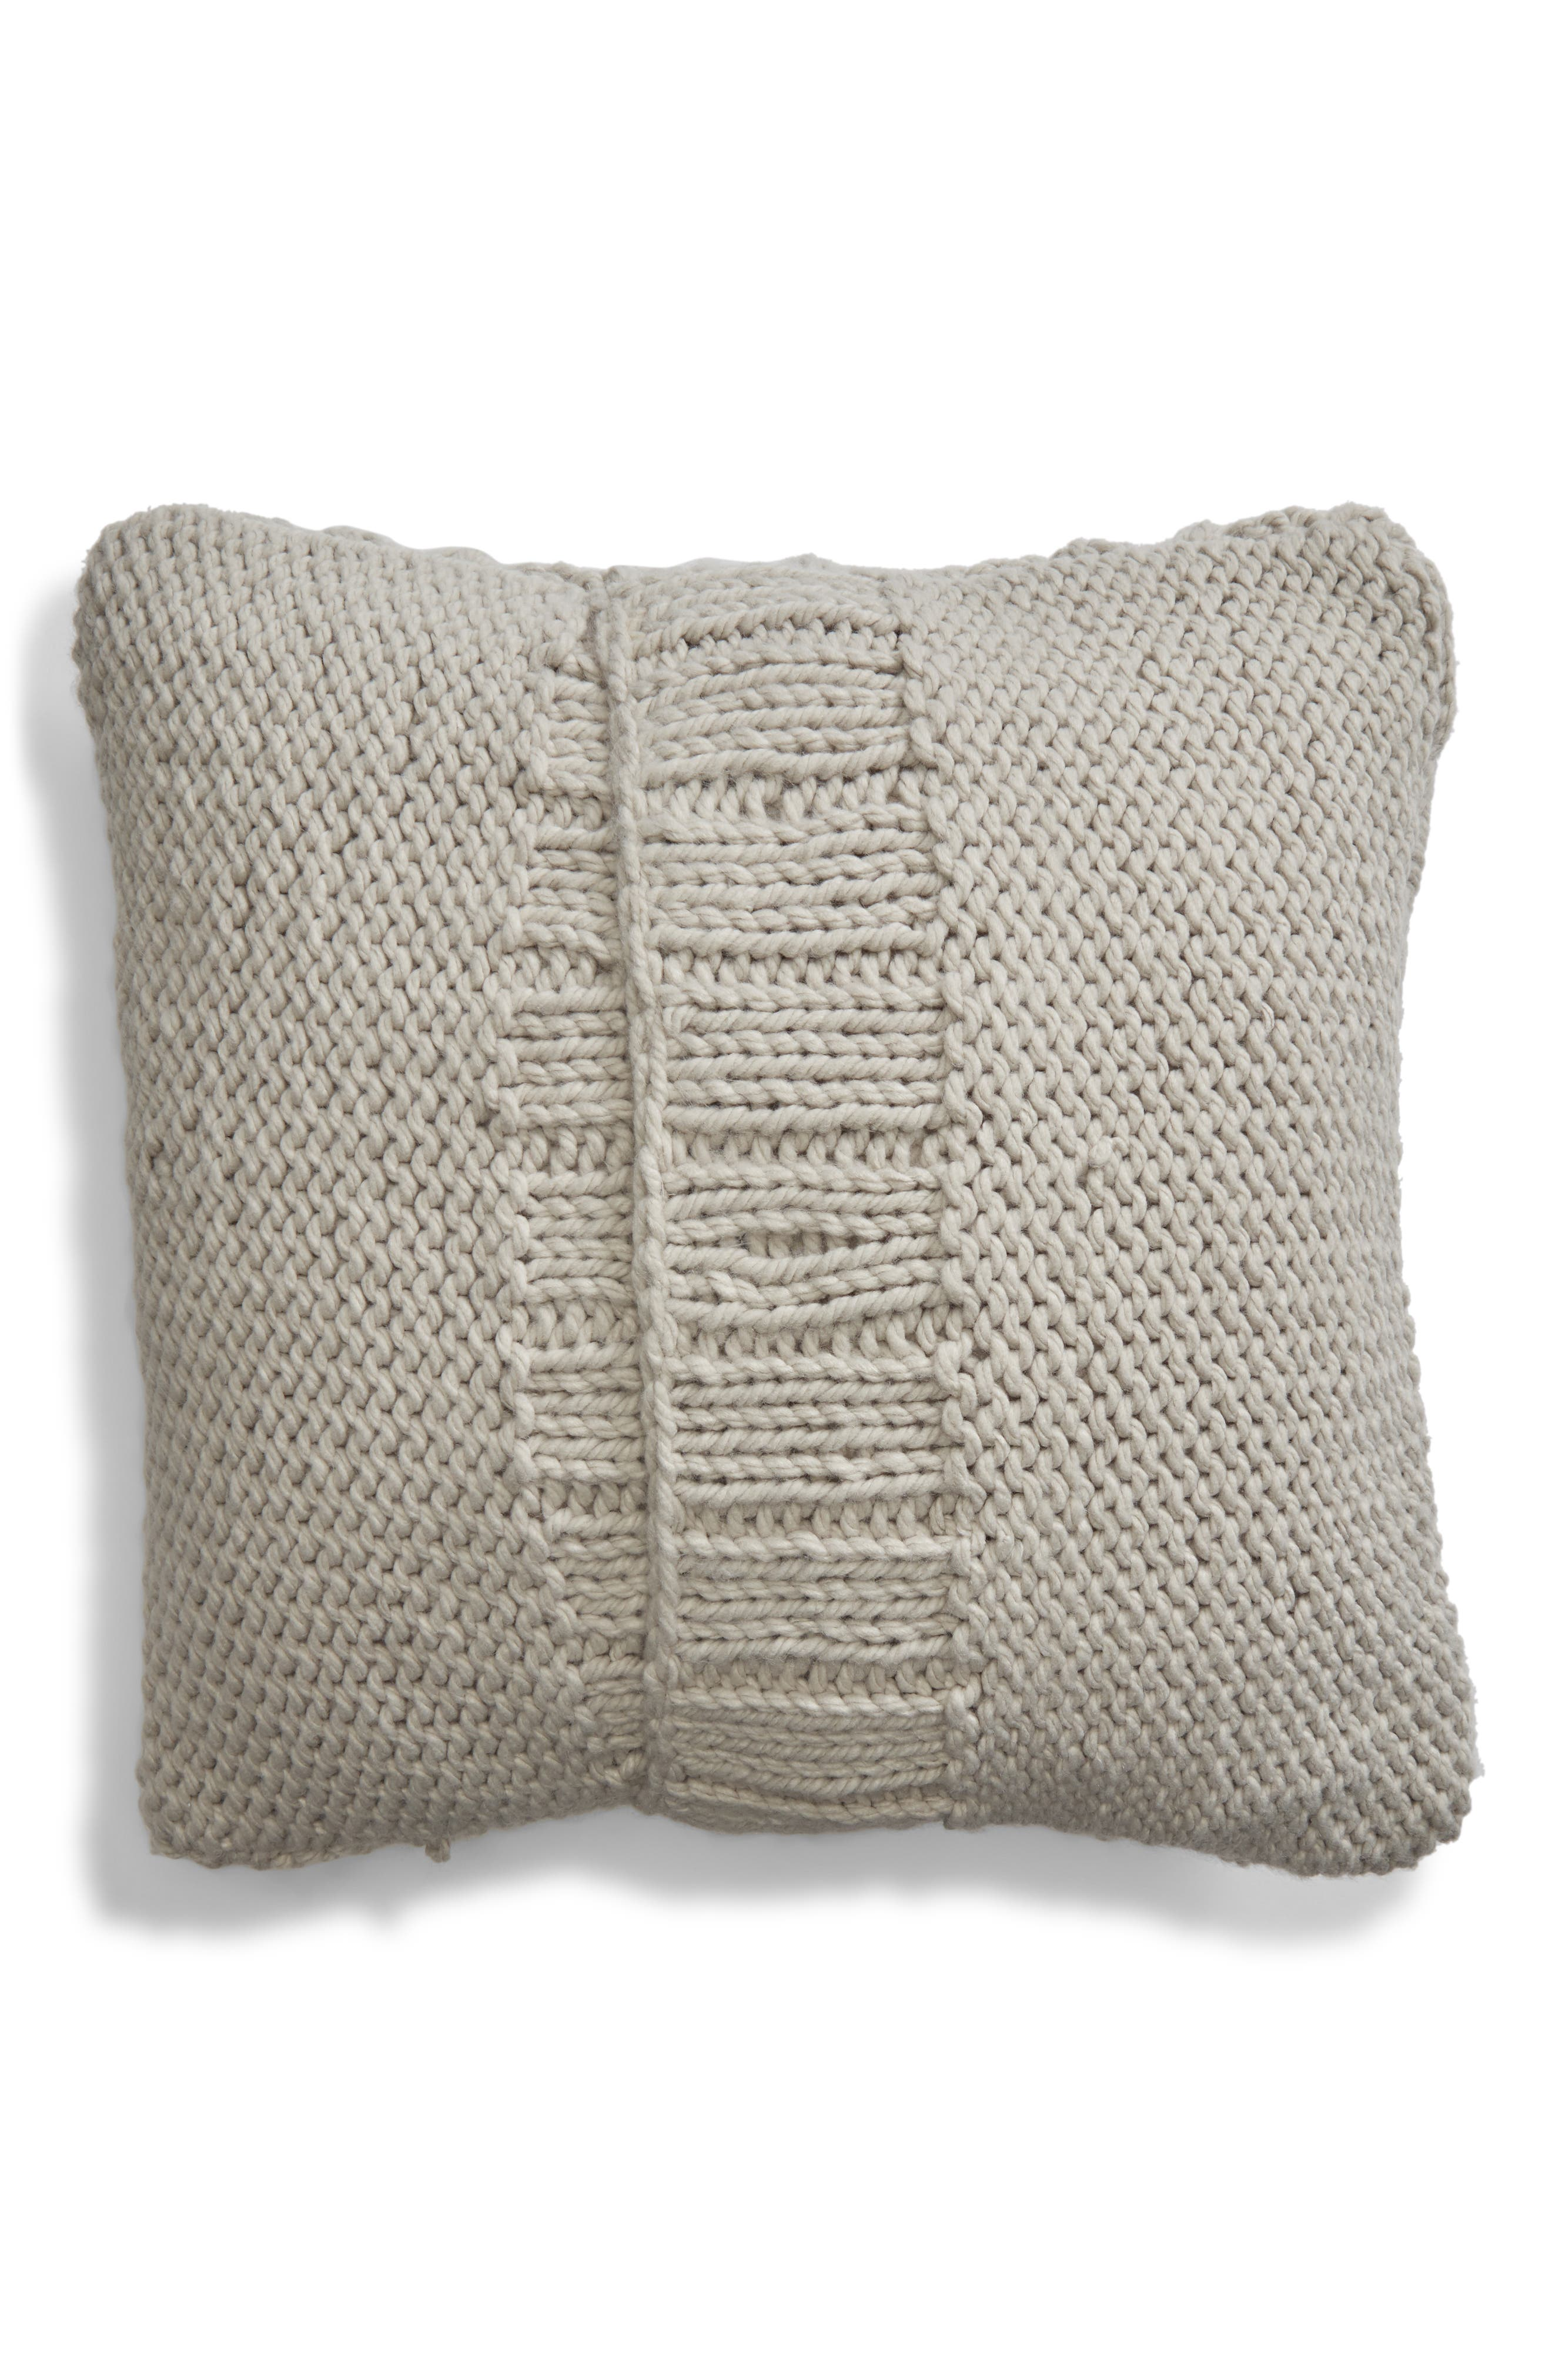 Chunky Cable Knit Accent Pillow,                             Alternate thumbnail 2, color,                             020